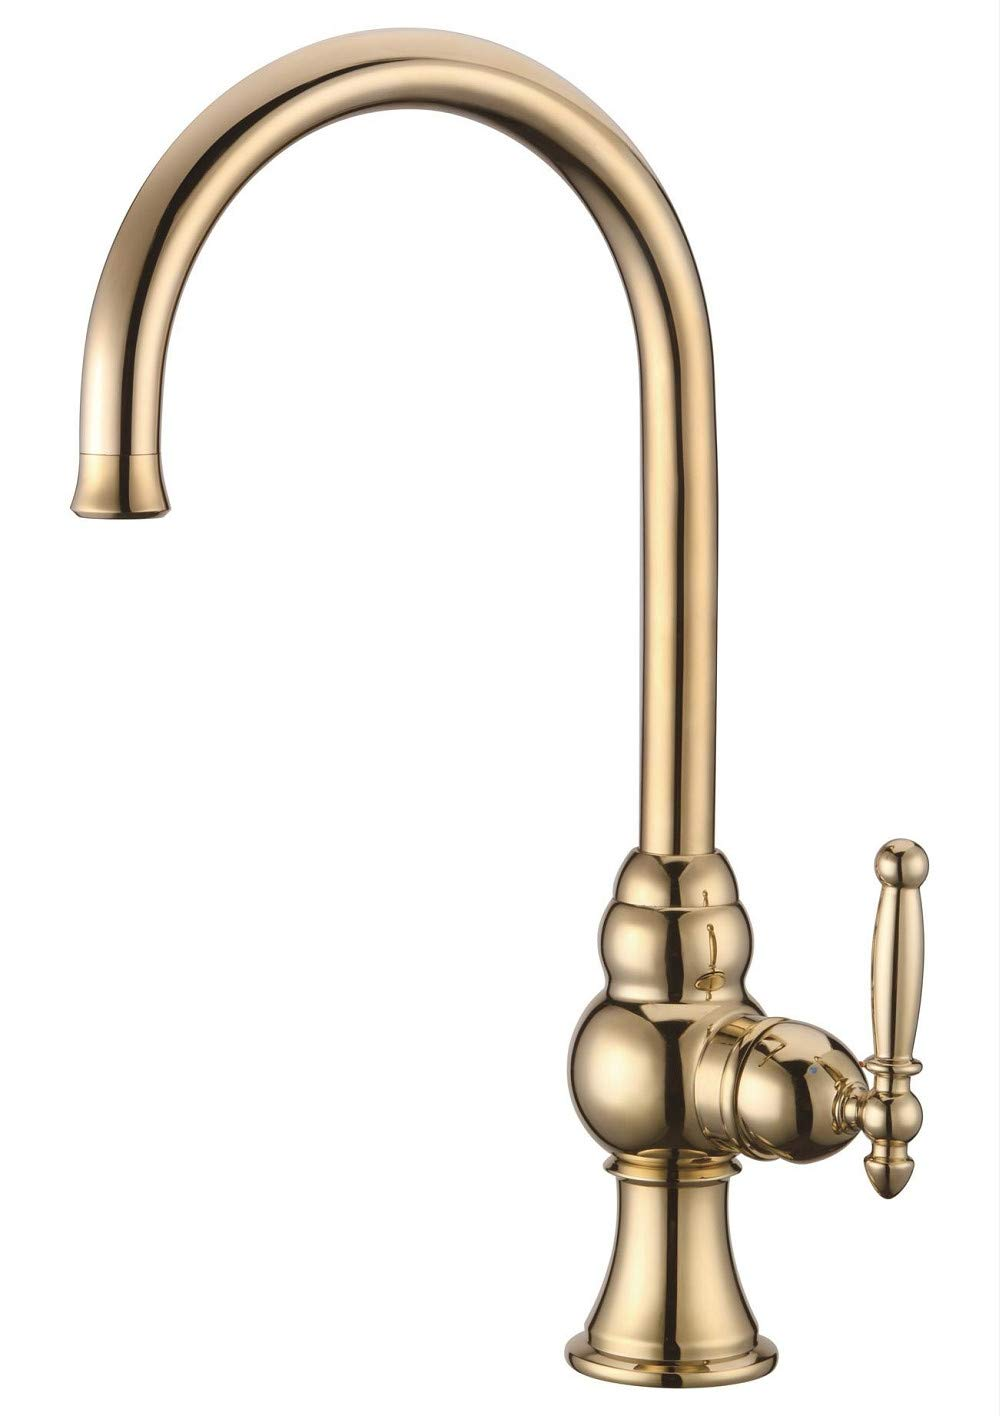 A Decorry Sink Faucets to Keep Water Faucets with Brass, Ceramic Valve Core Kitchen Basin Faucet gold with Single, B